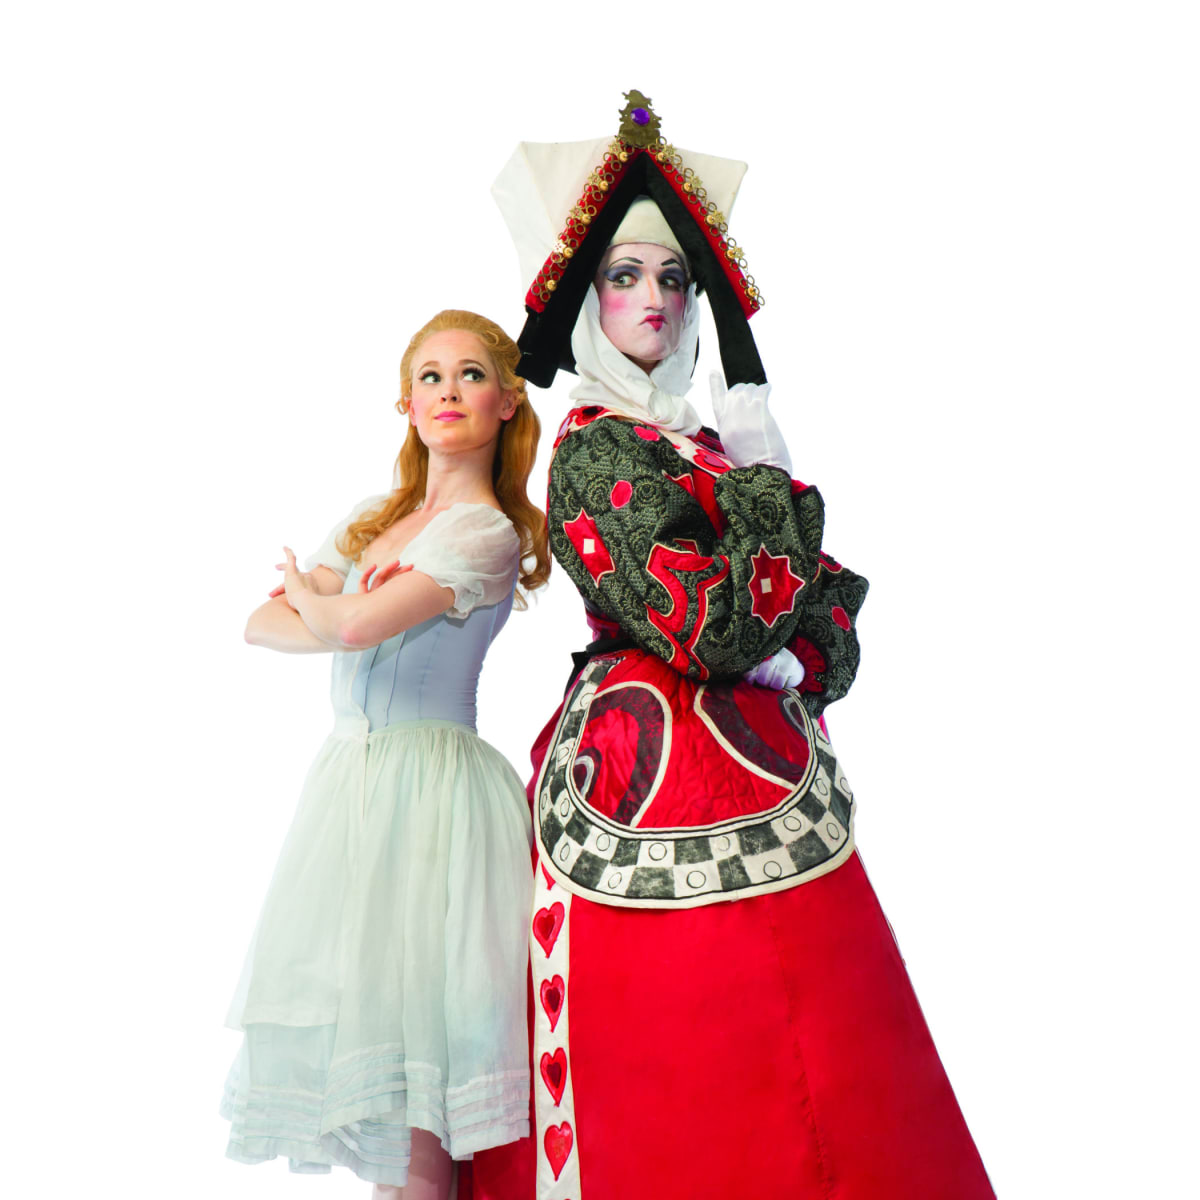 Texas Ballet Theater presents Alice in Wonderland